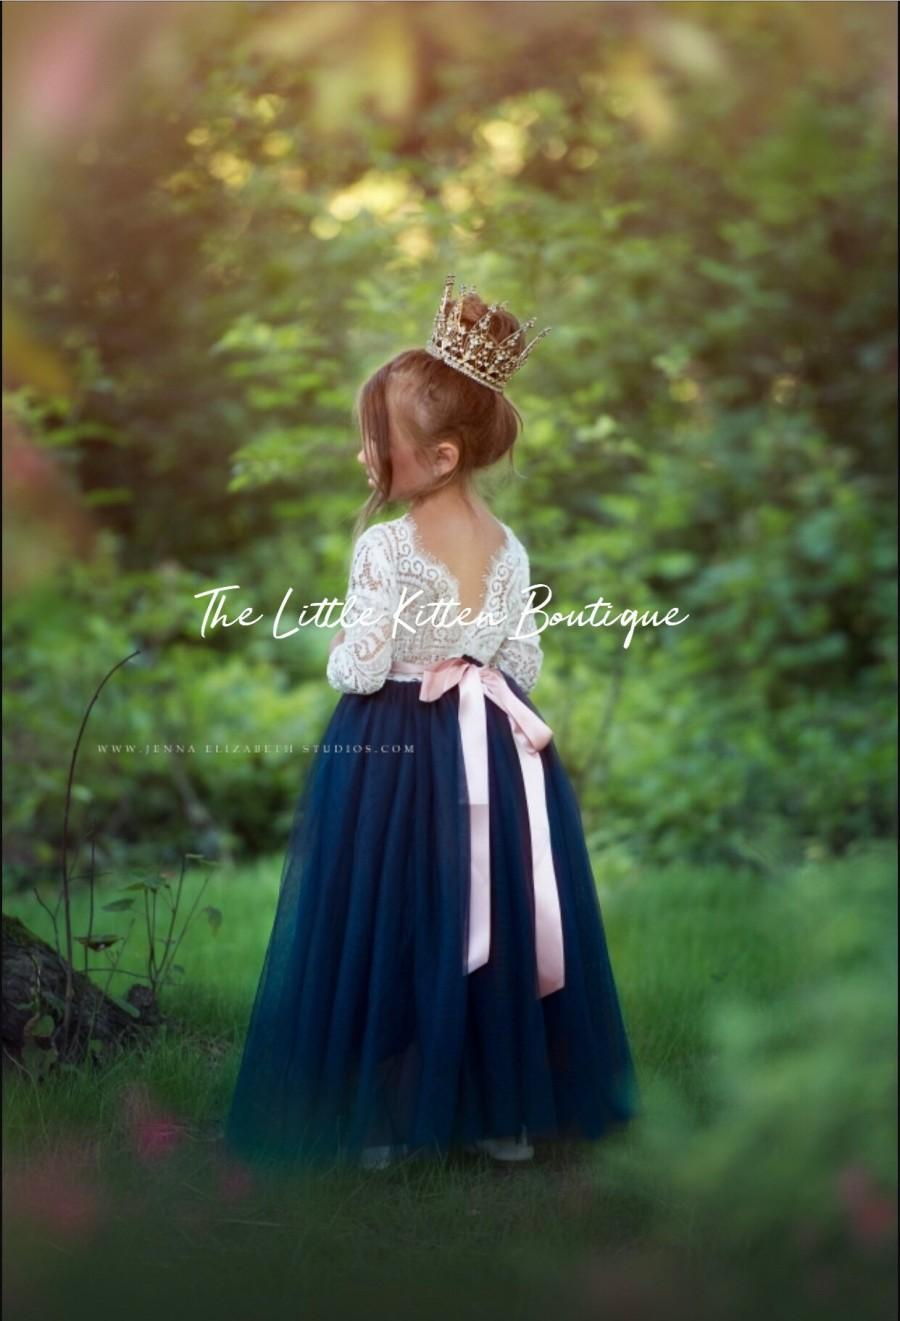 زفاف - Flower Girl Dress, tulle flower girl dresses, white lace flower girl dress, Nautical Flower Girl Dress, Navy Blue Flower Girl Dress, tiara